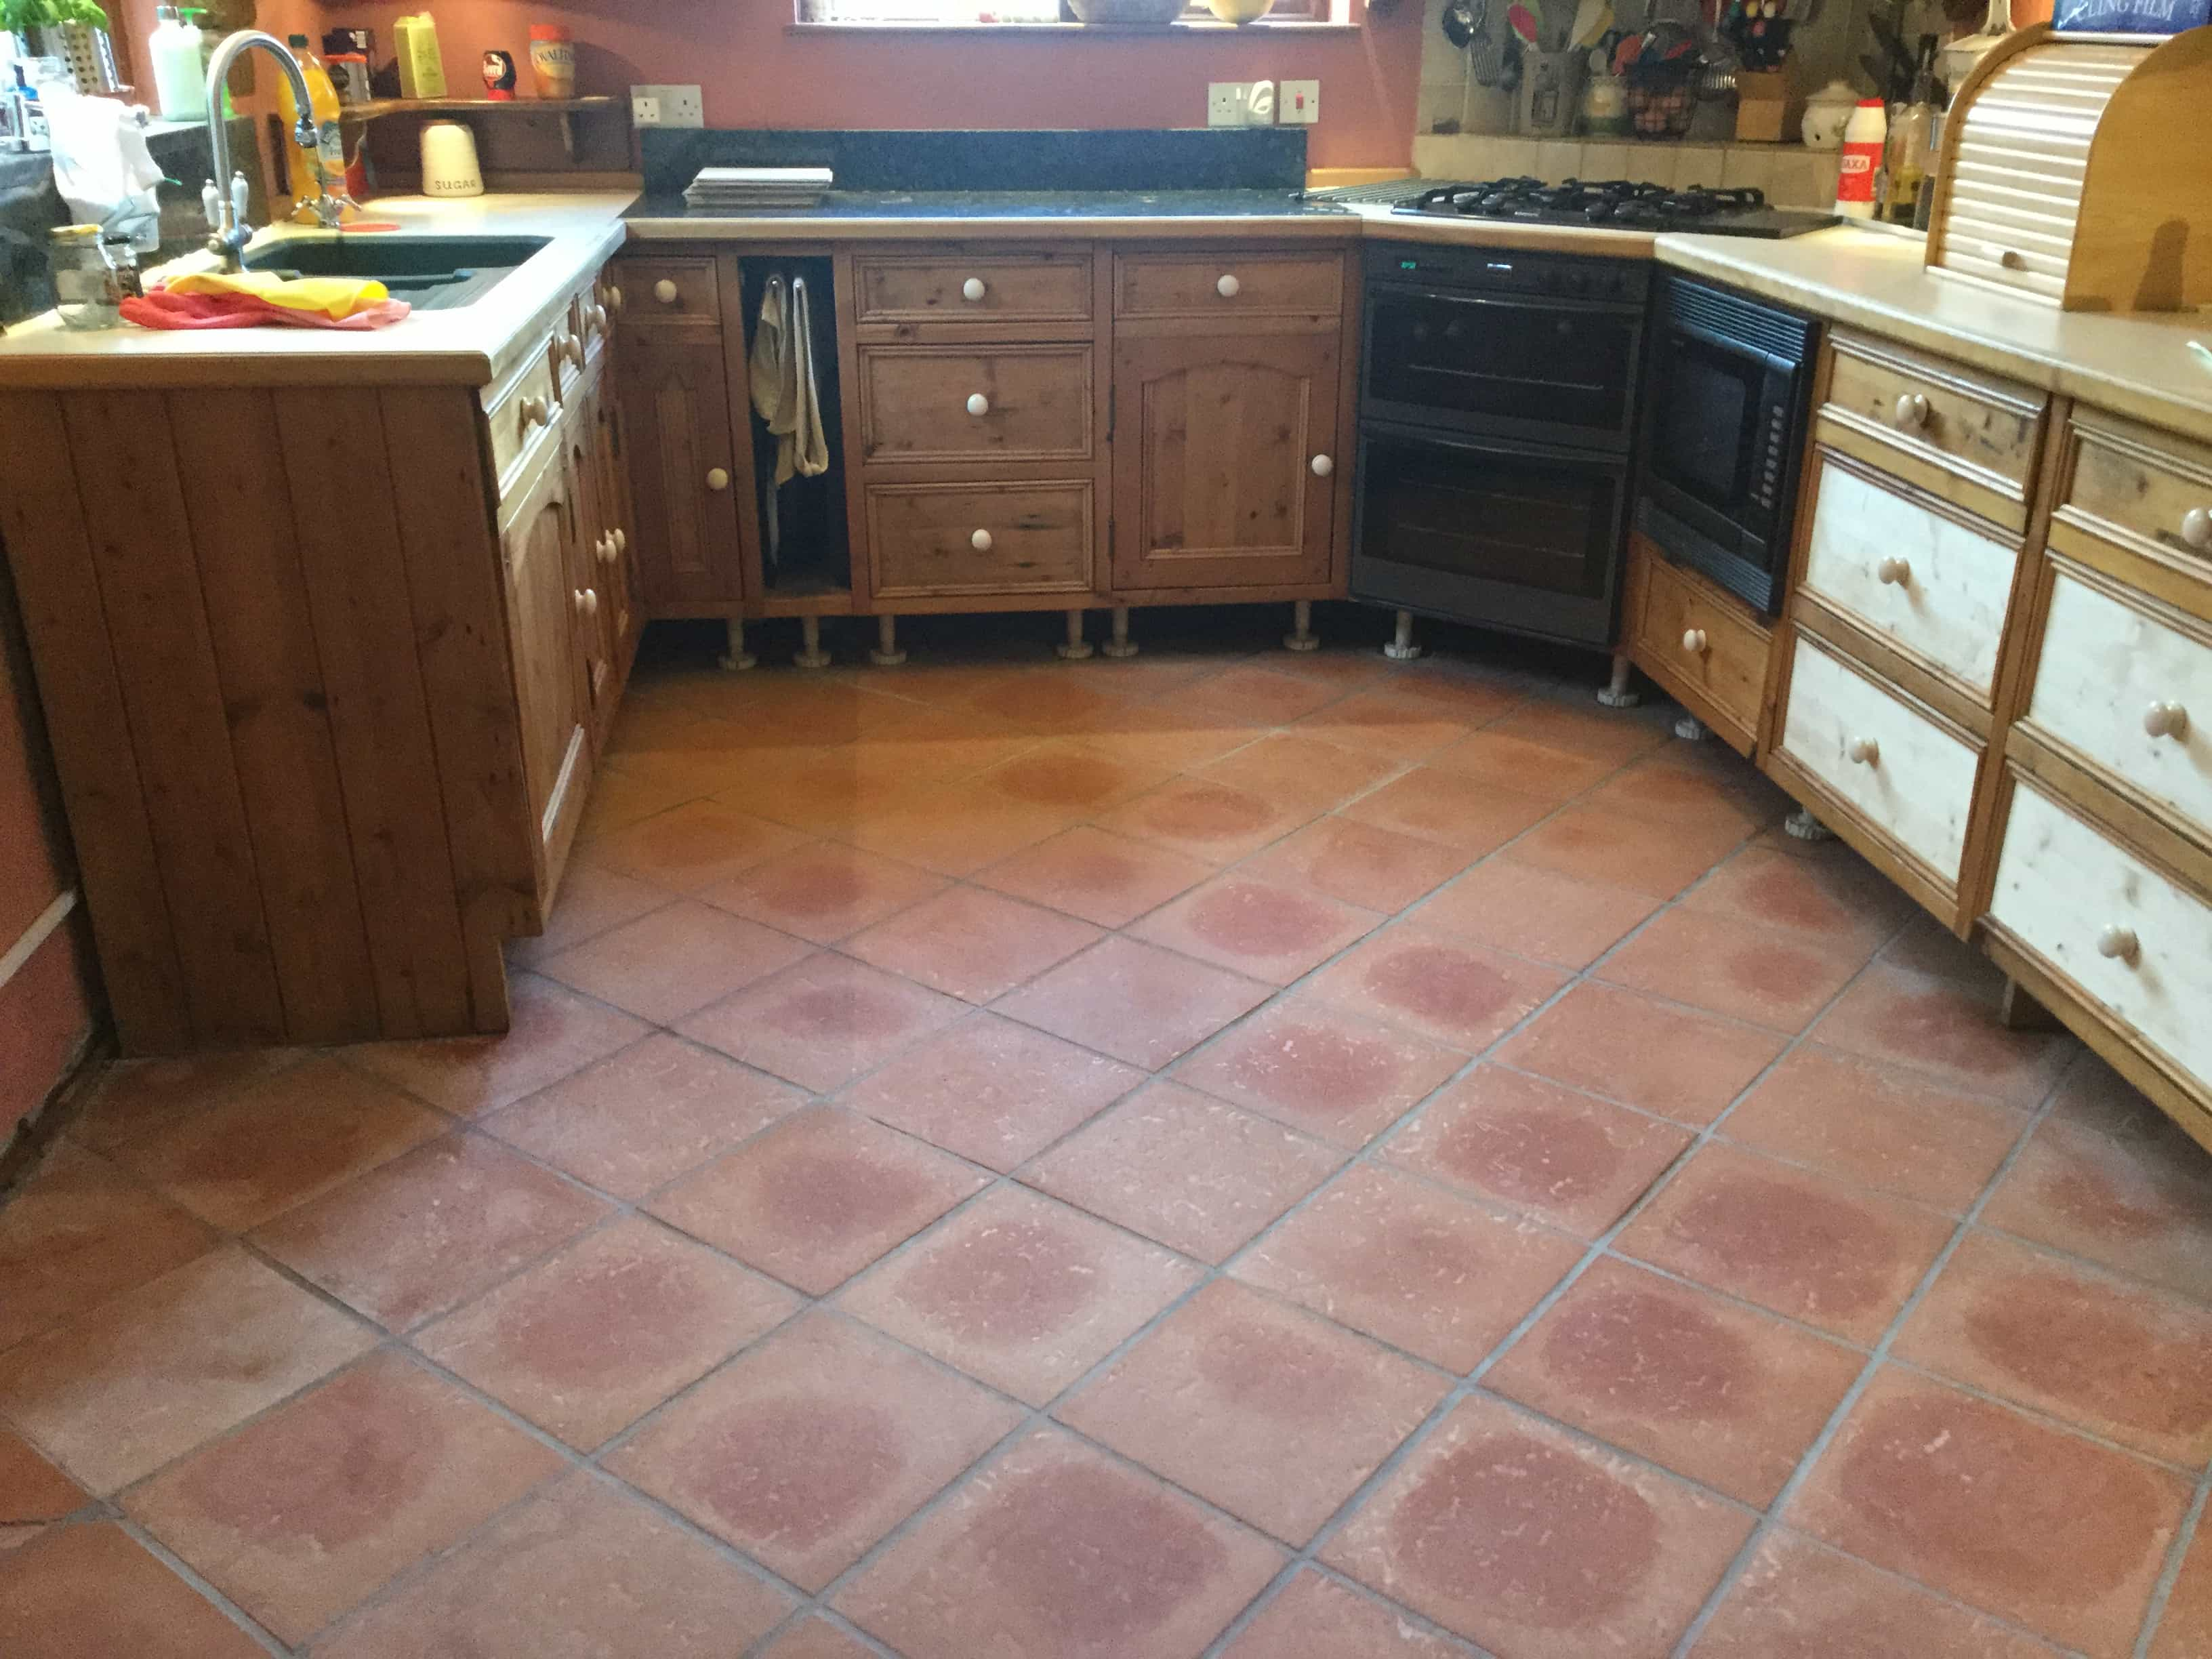 Terracotta Tiled Kitchen Floor After Cleaning Maidford